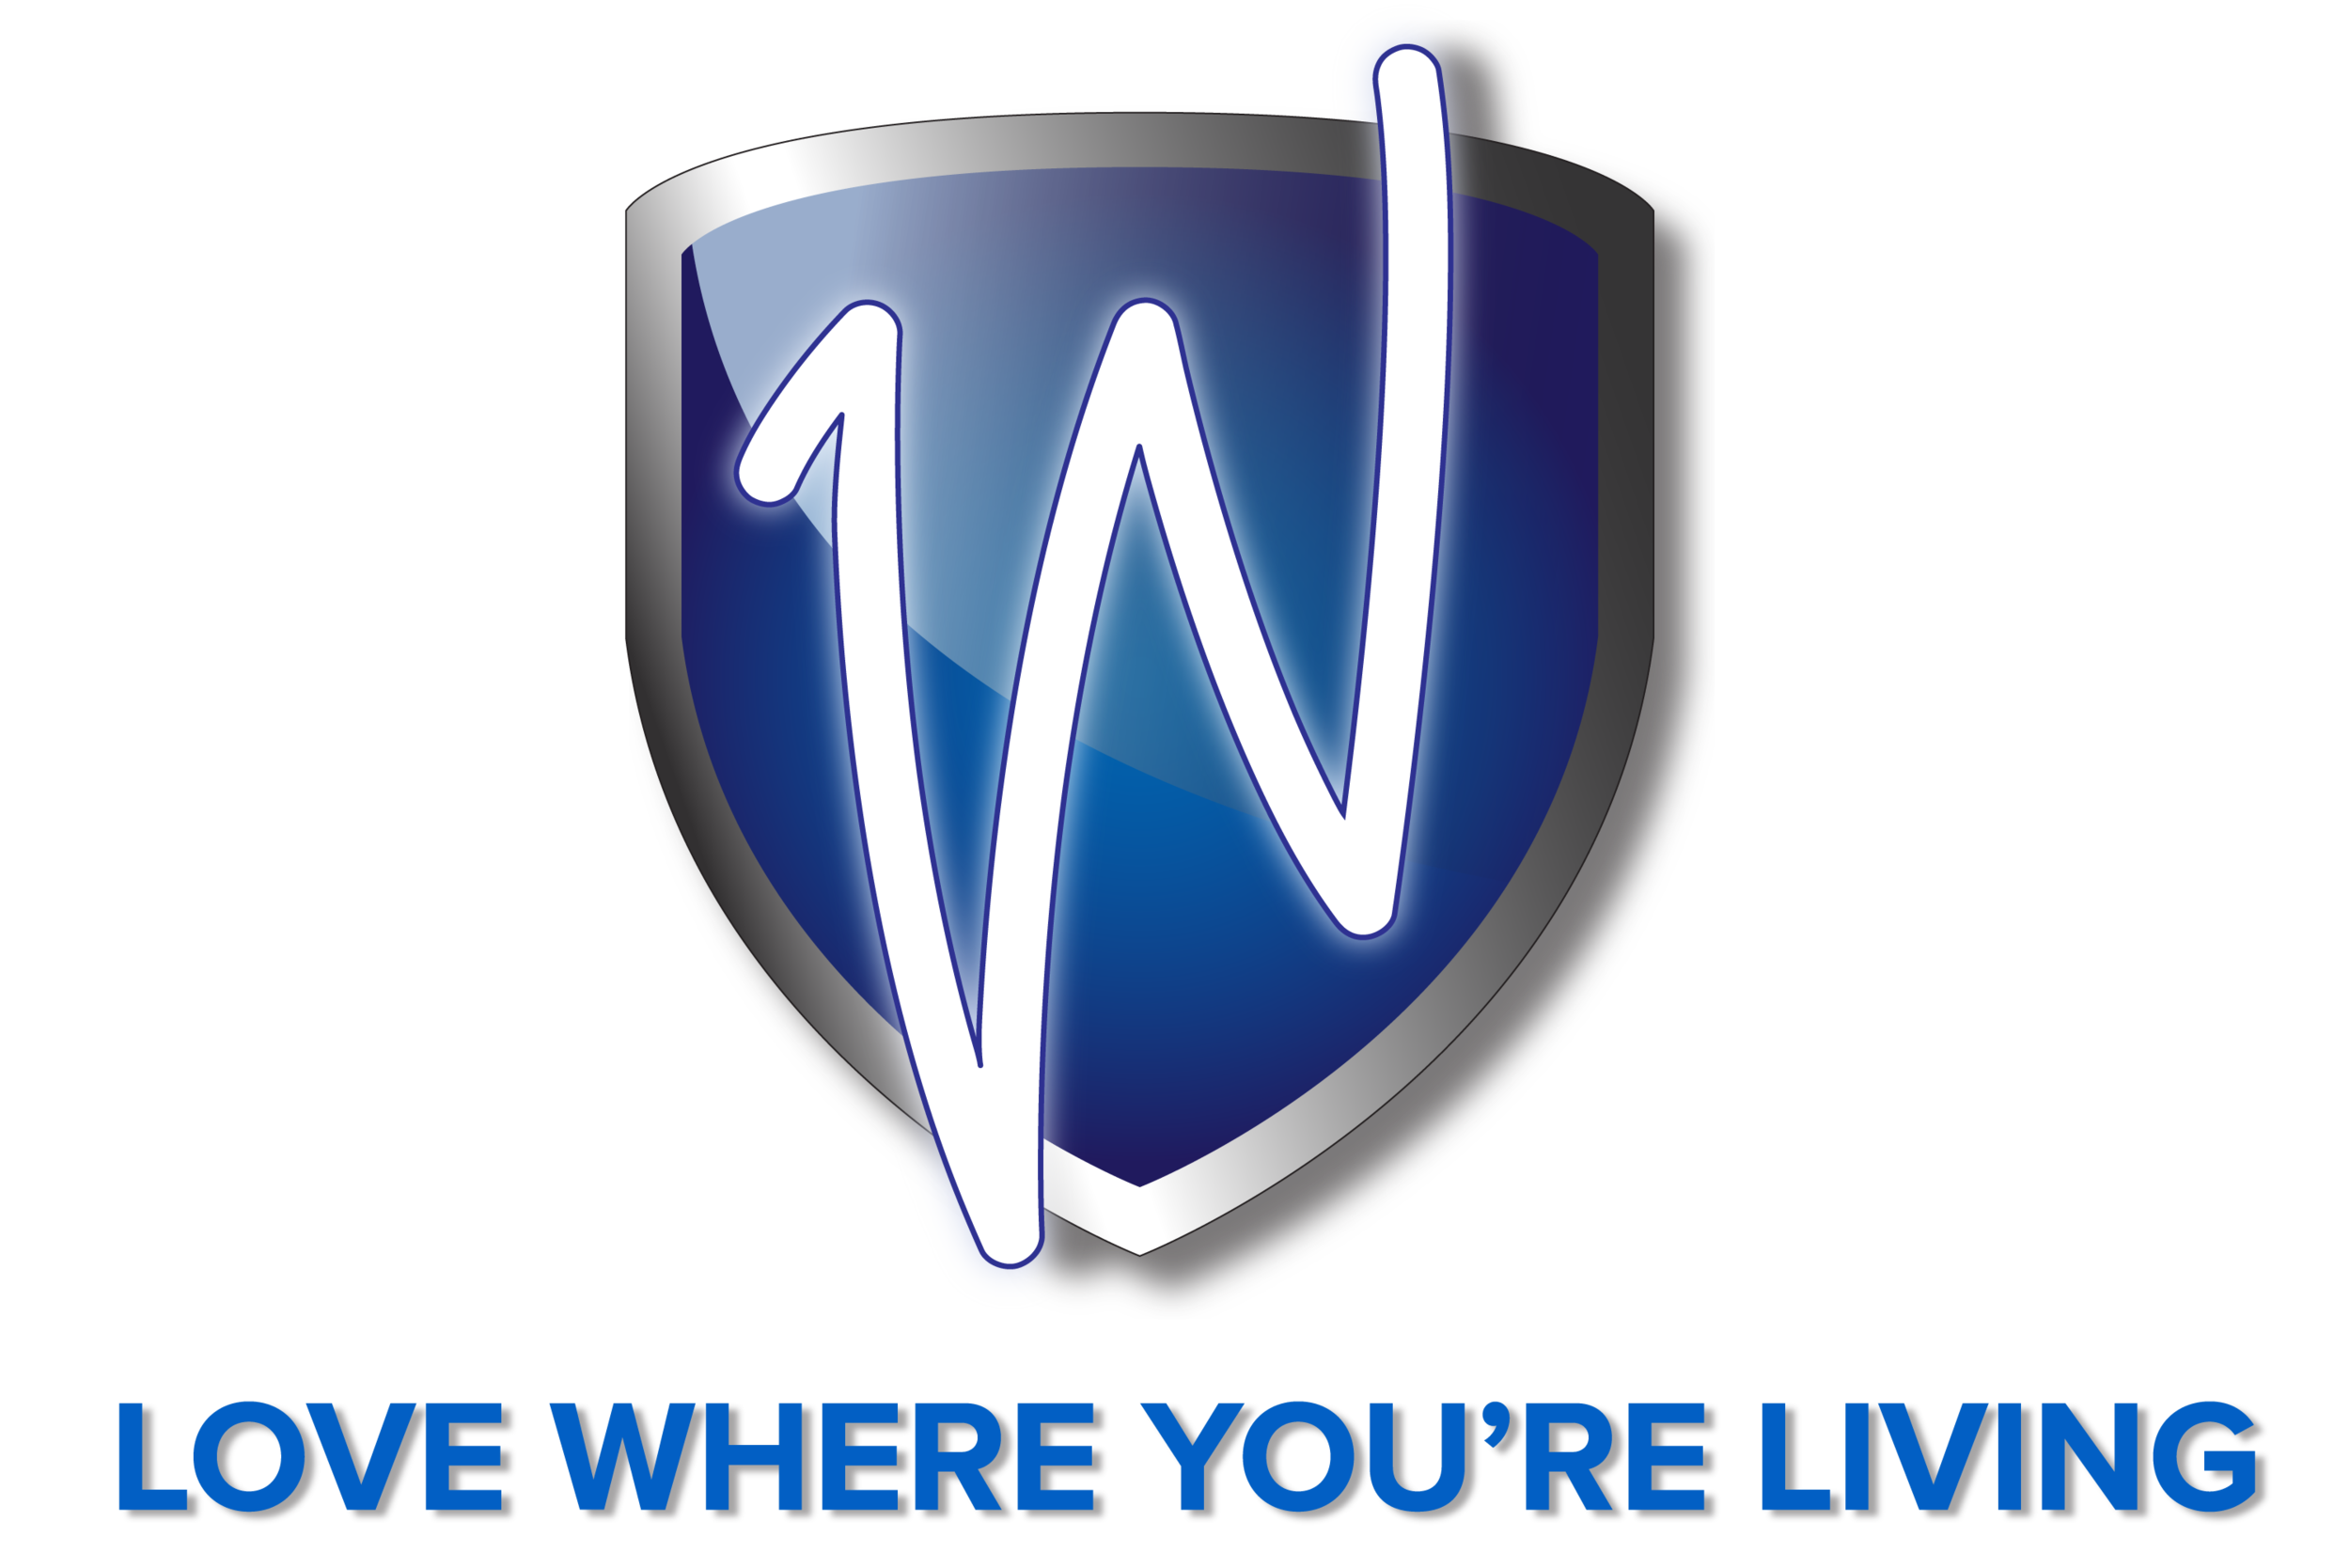 Westminster Apartments and Townhomes in Greenwood, Indiana - Love Where You're Living